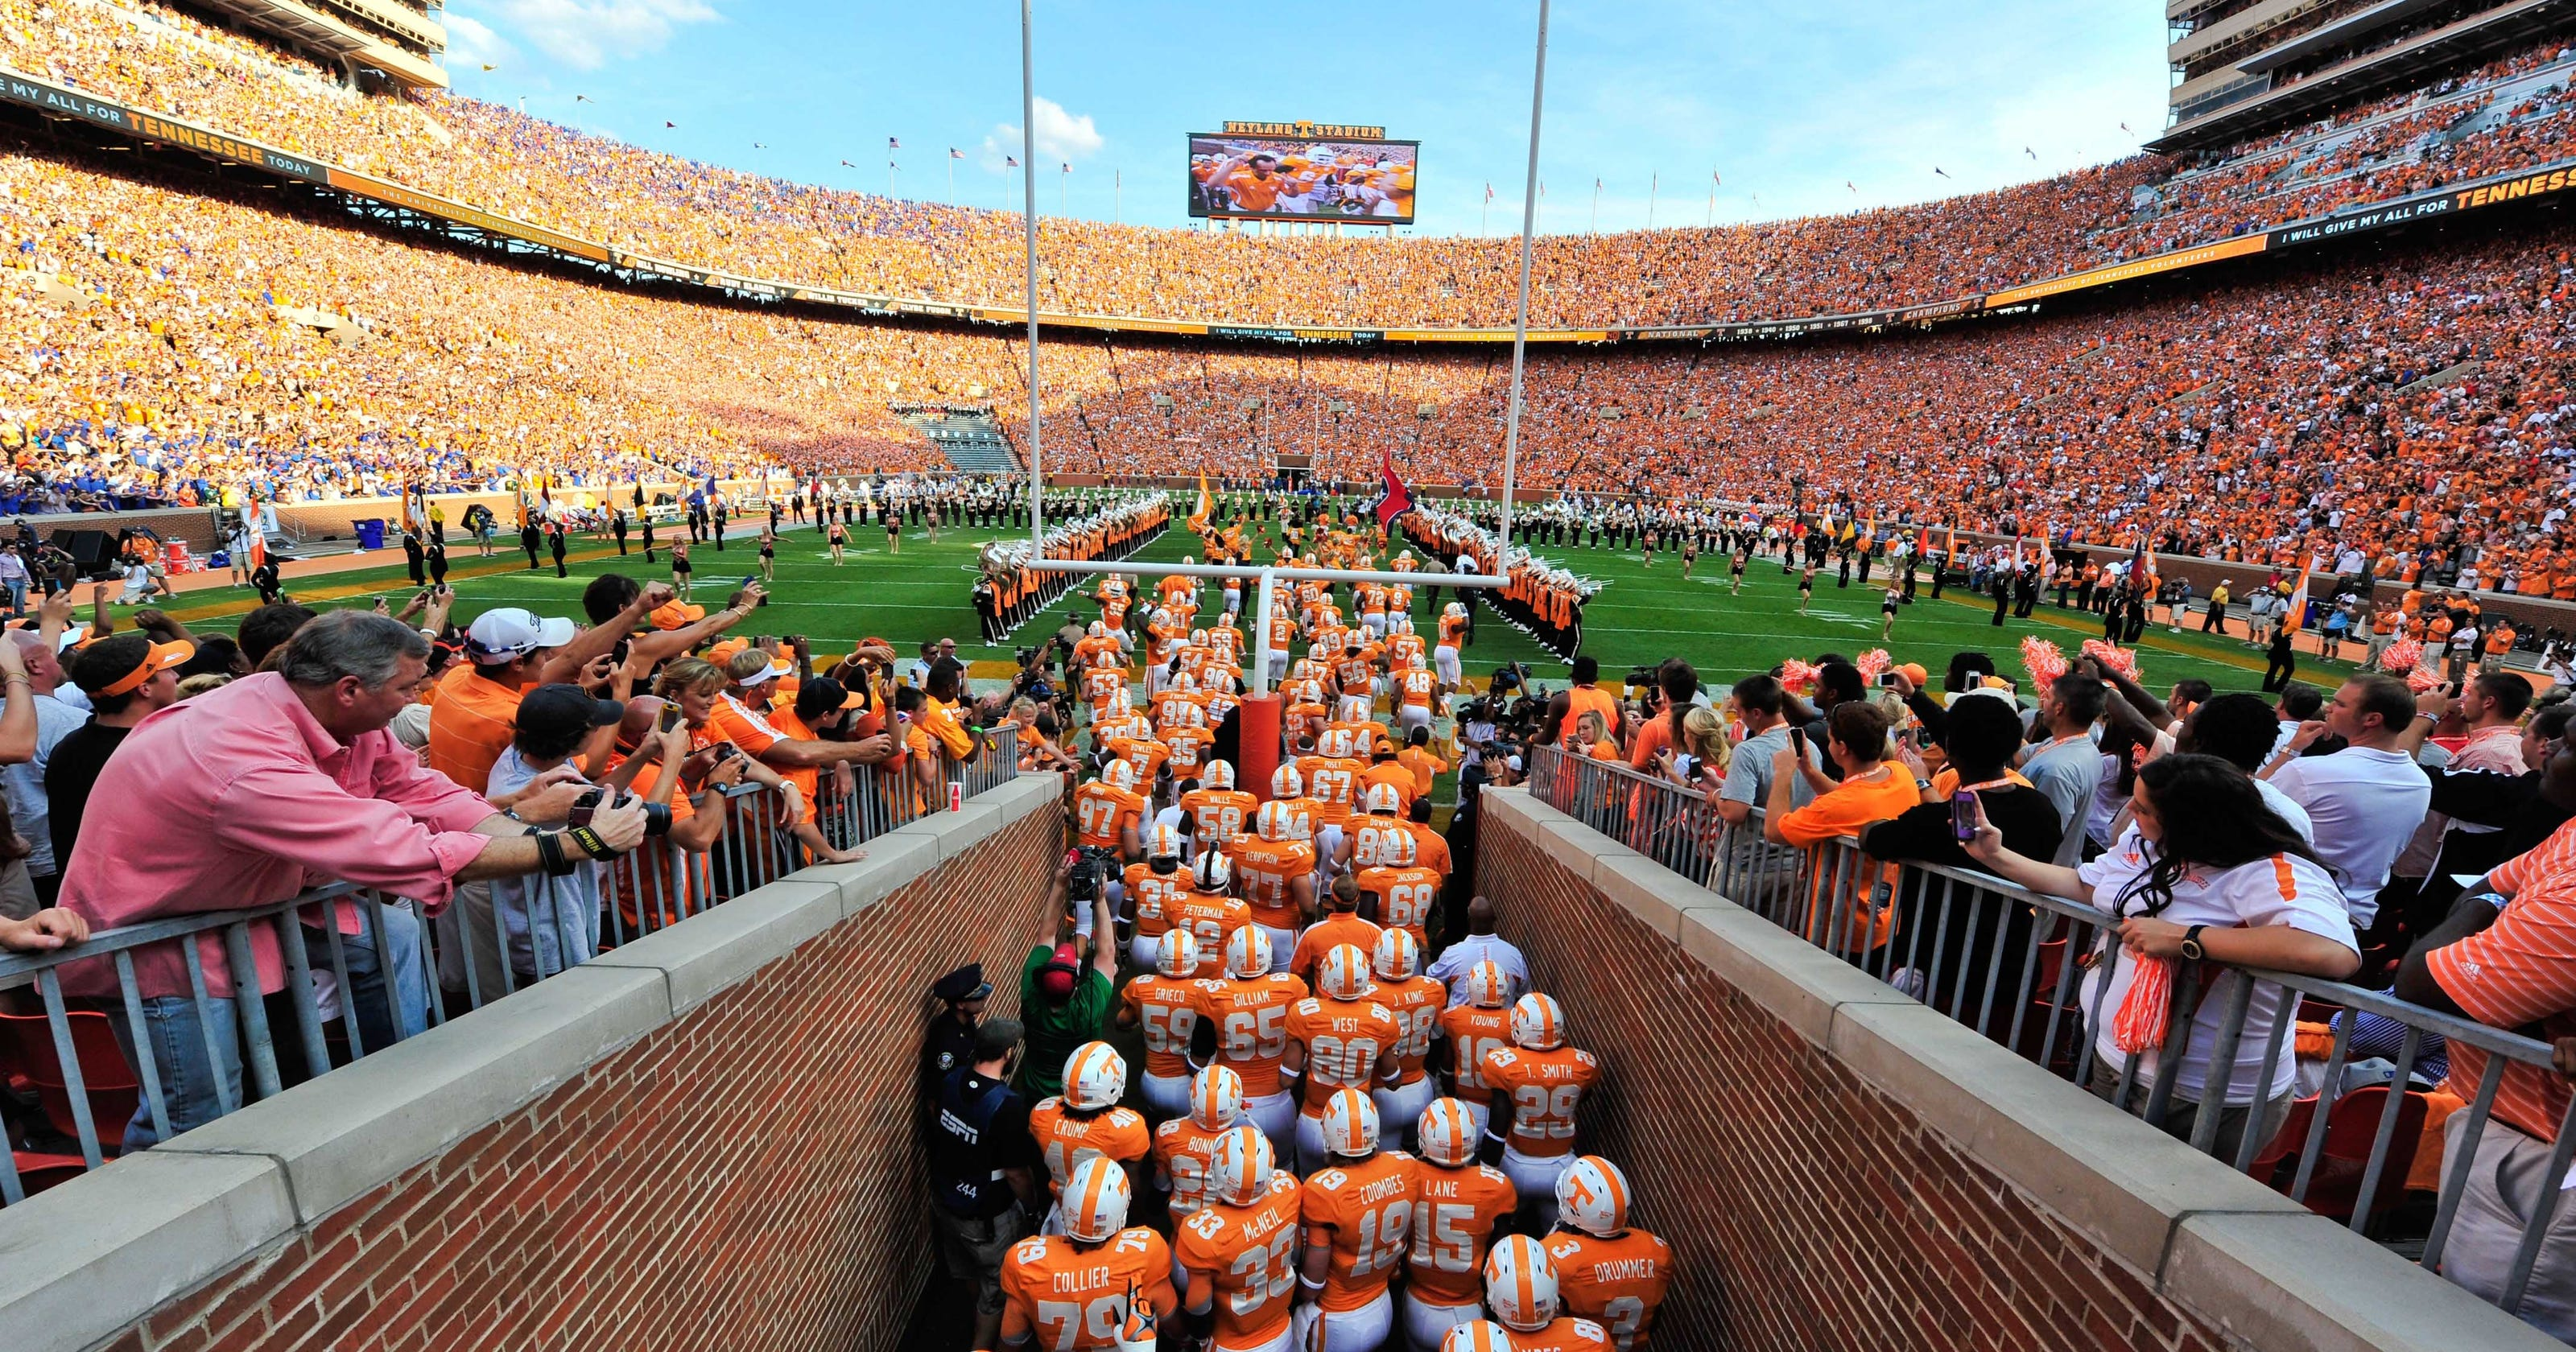 Report tennessee athletics over 200 million in debt for Sec football wallpaper